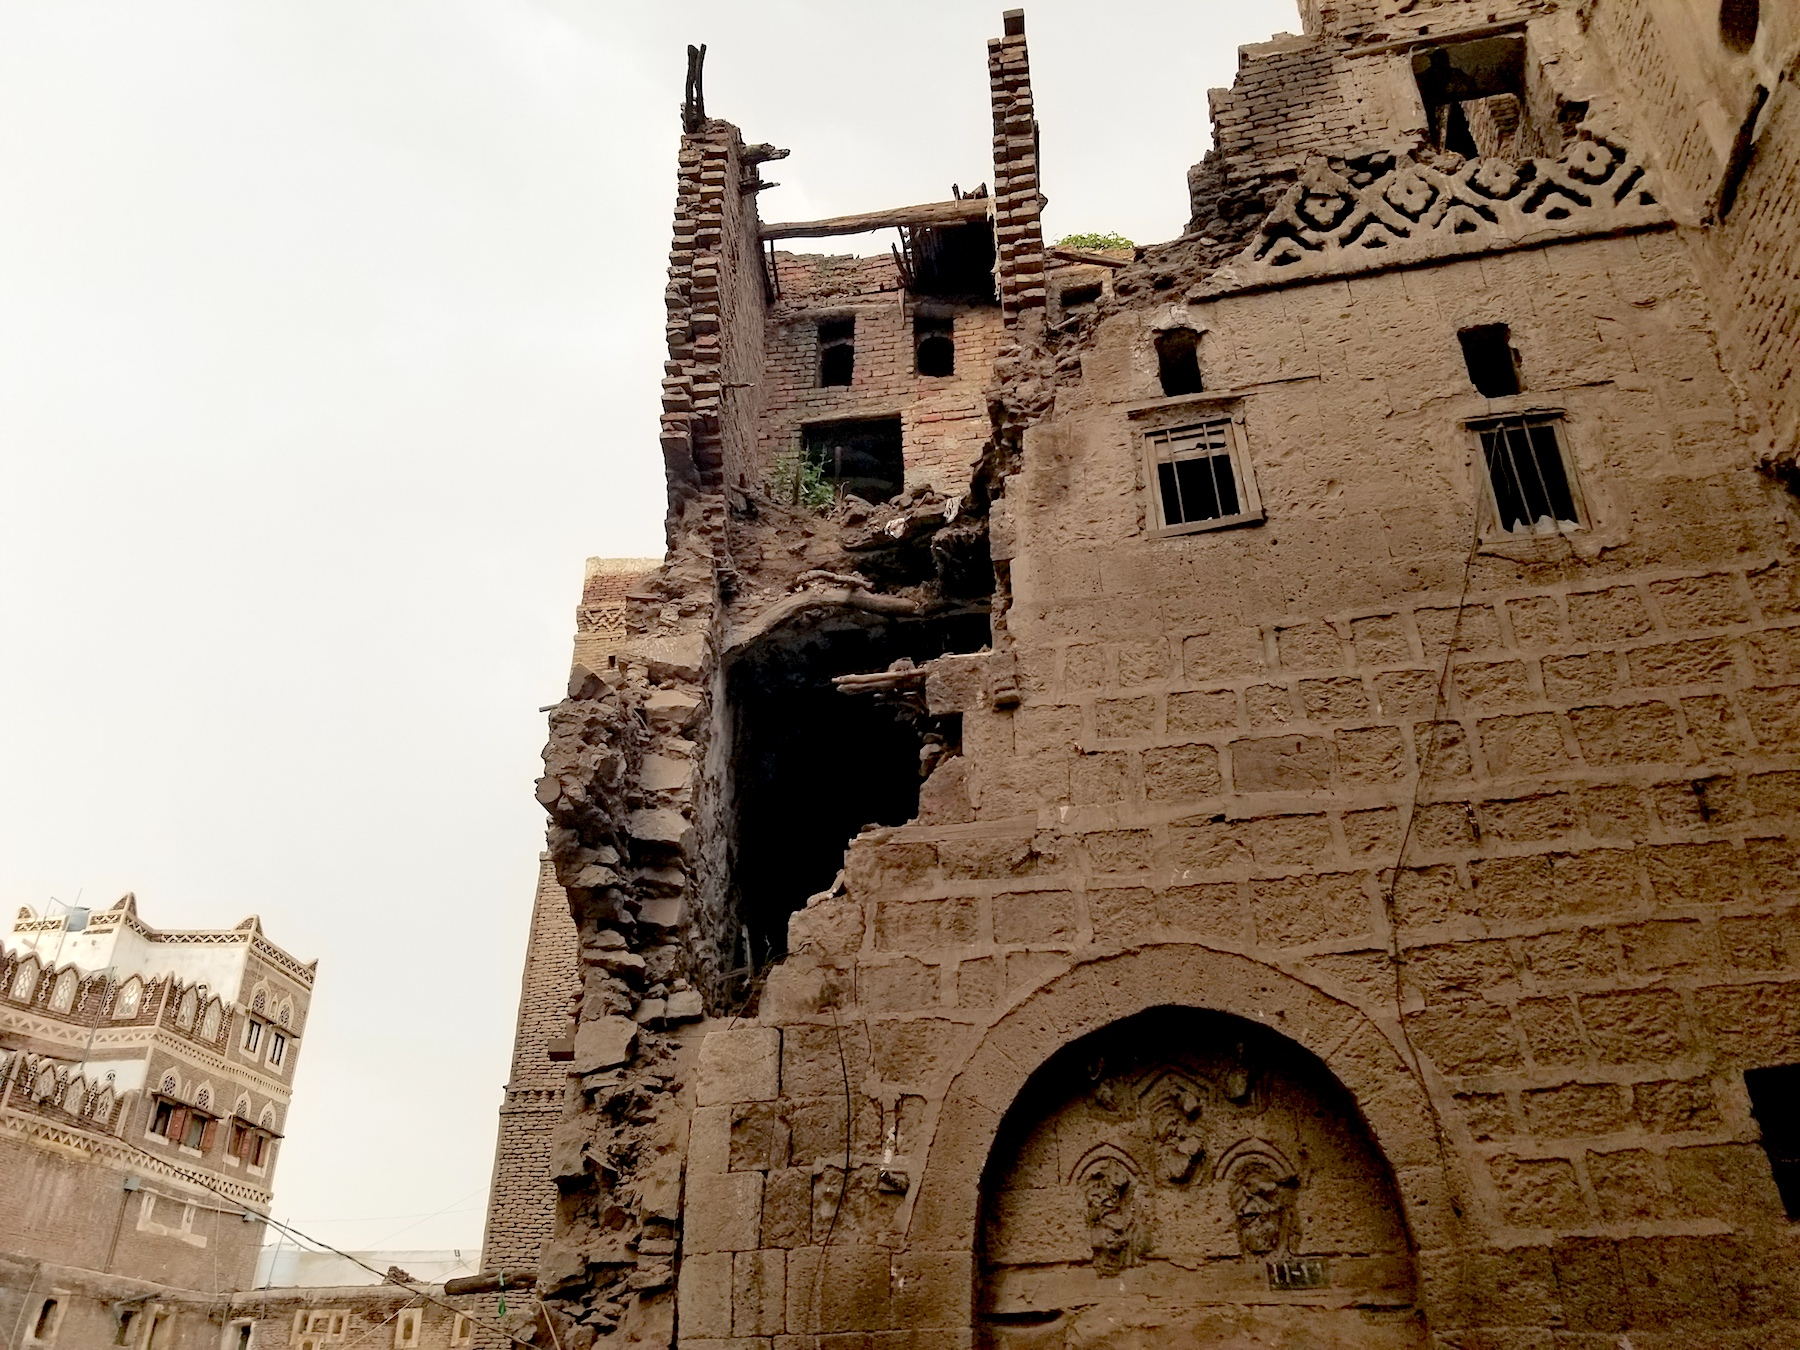 Damaged ancient building in Sanaa's Old City